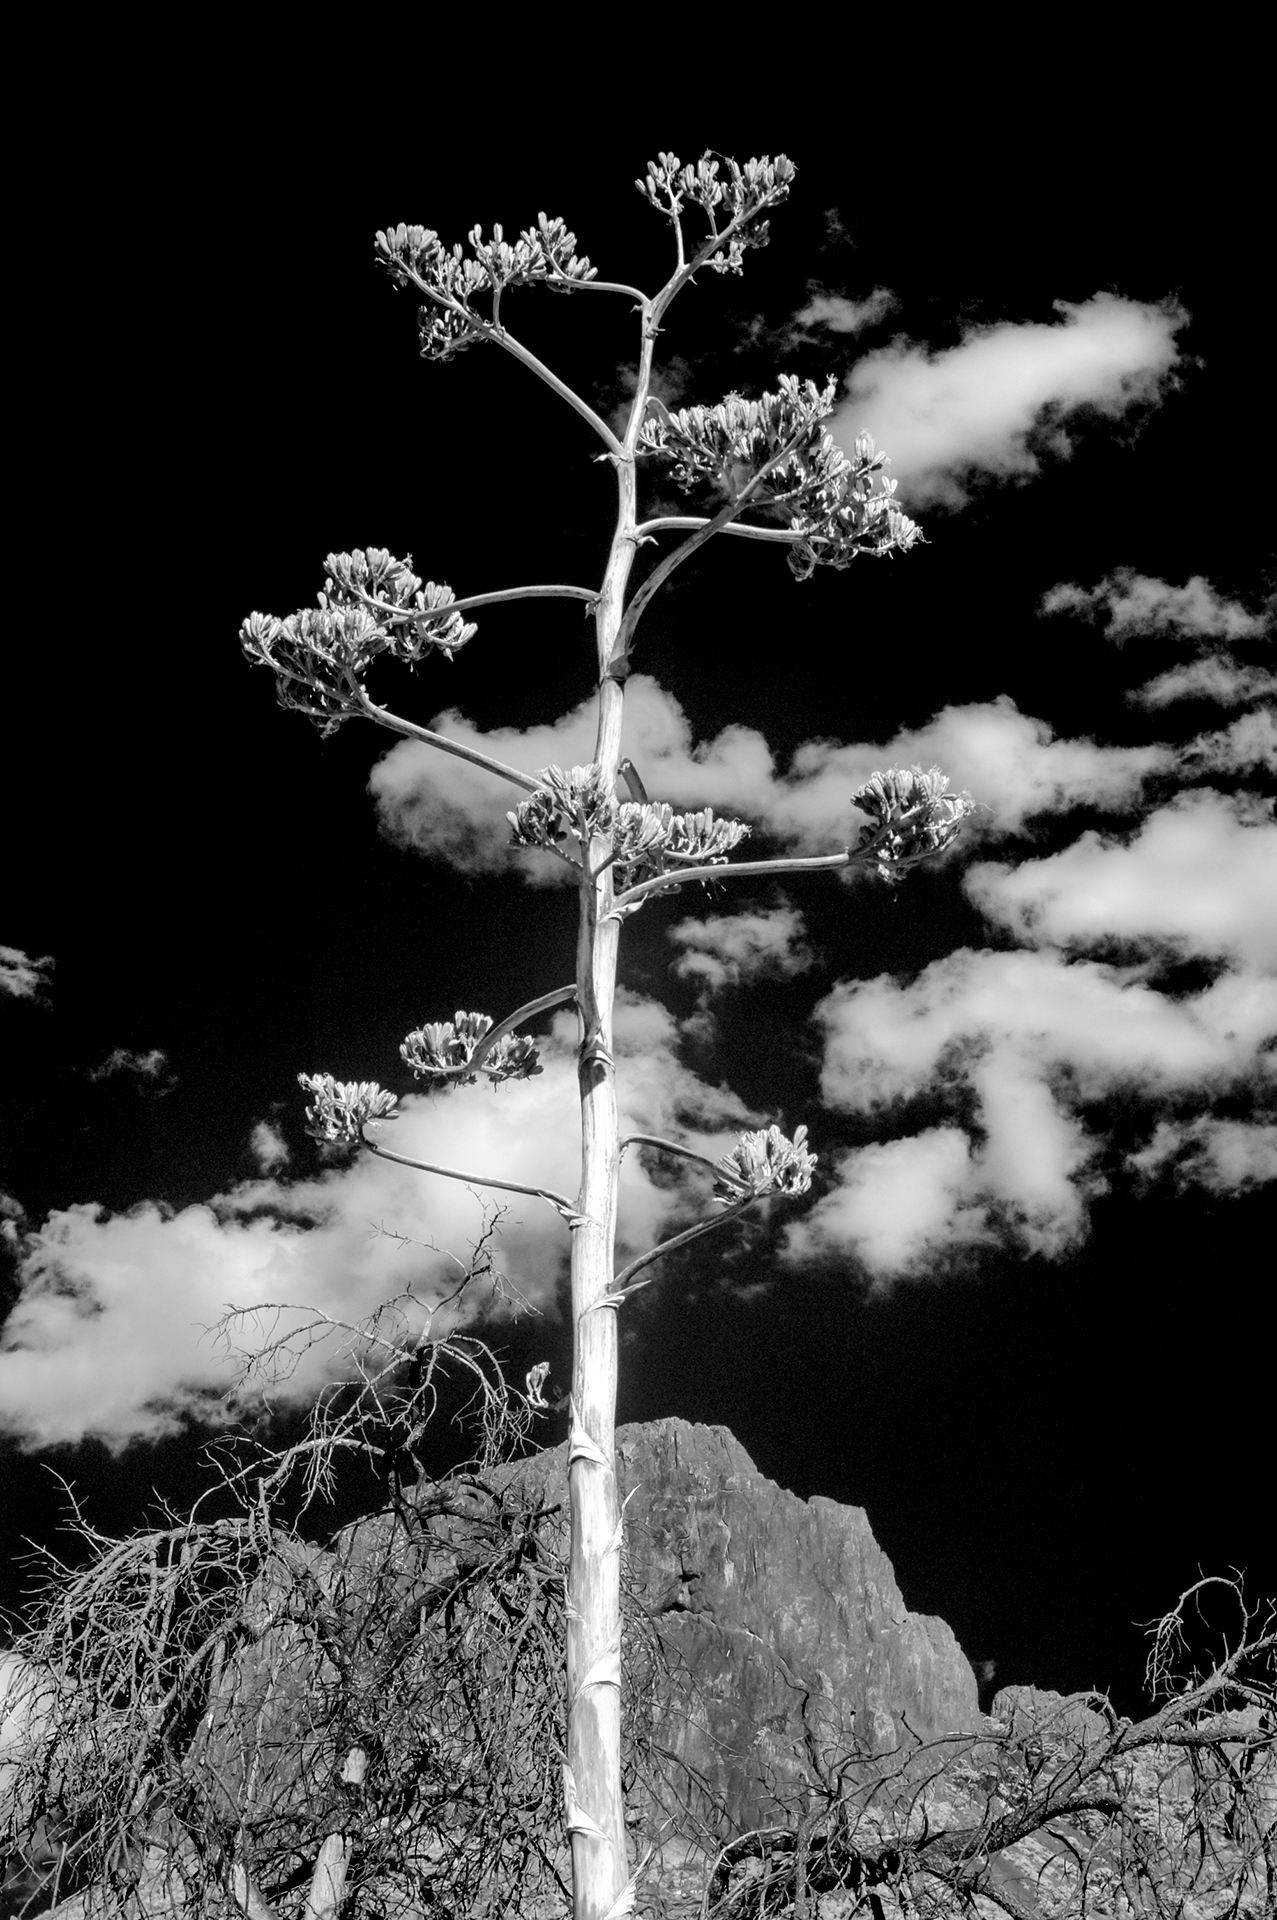 Fine art conceptual photography of cactus landscapes, black and white infrared